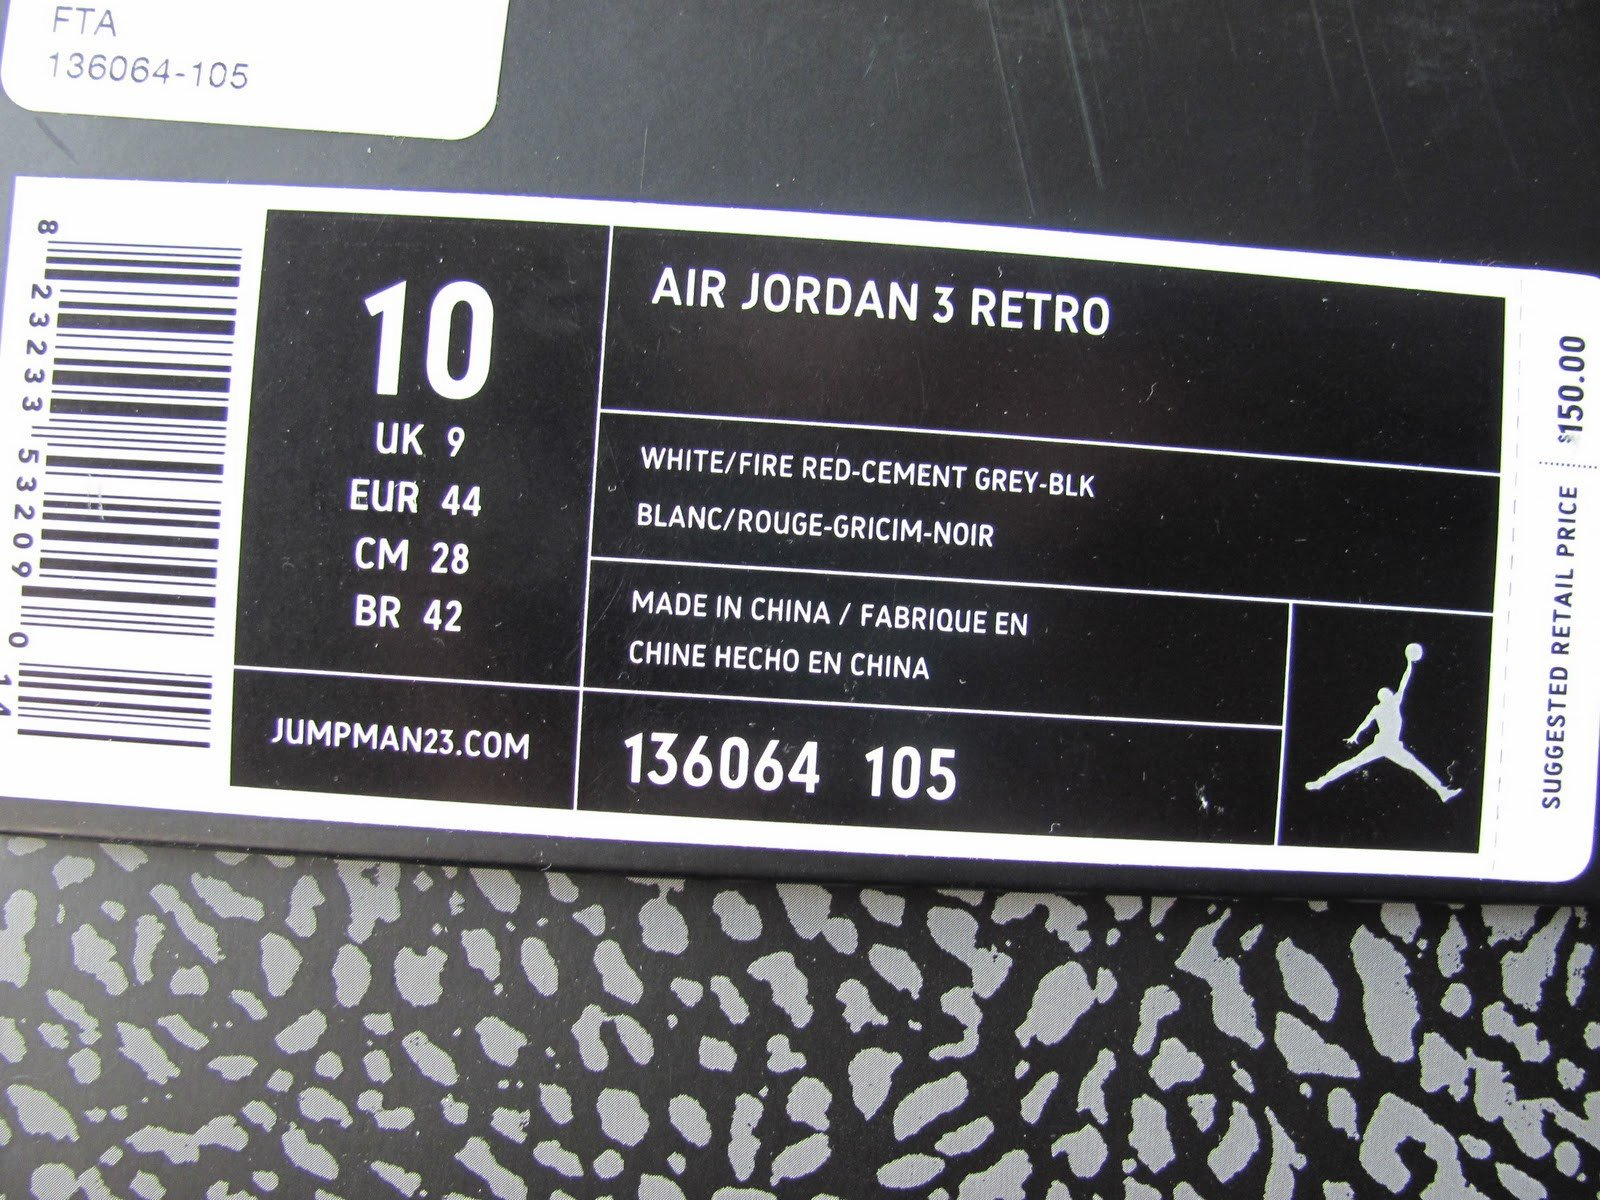 Nike Box Label Template Jordan Shoe Box Label Template the Siskind Law Firm